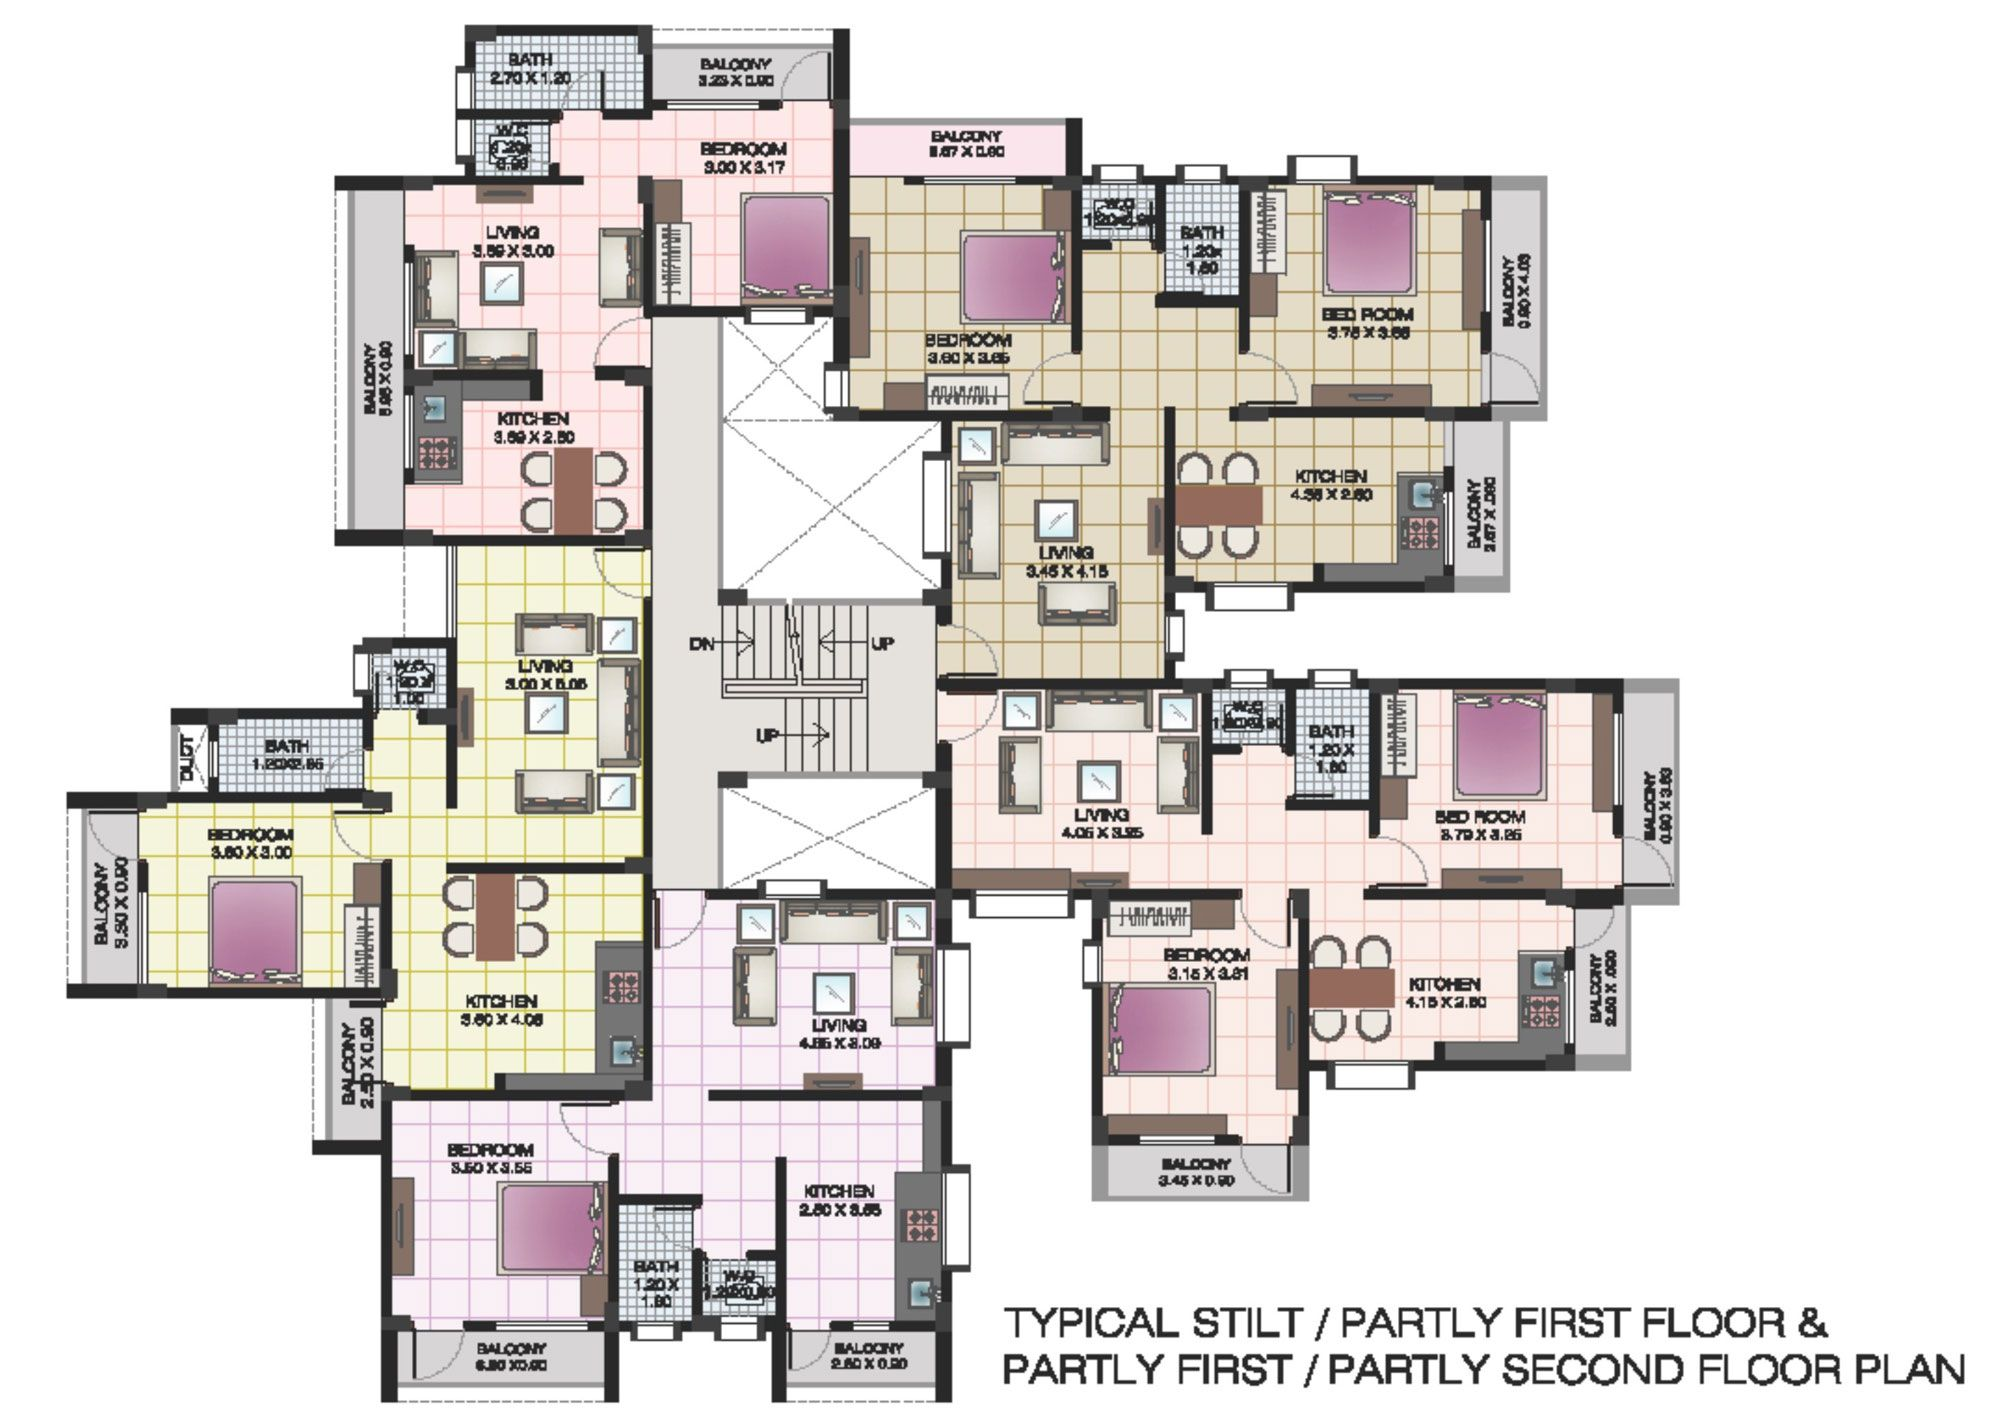 Exellent Apartment Design Plans Floor Plan Building Location